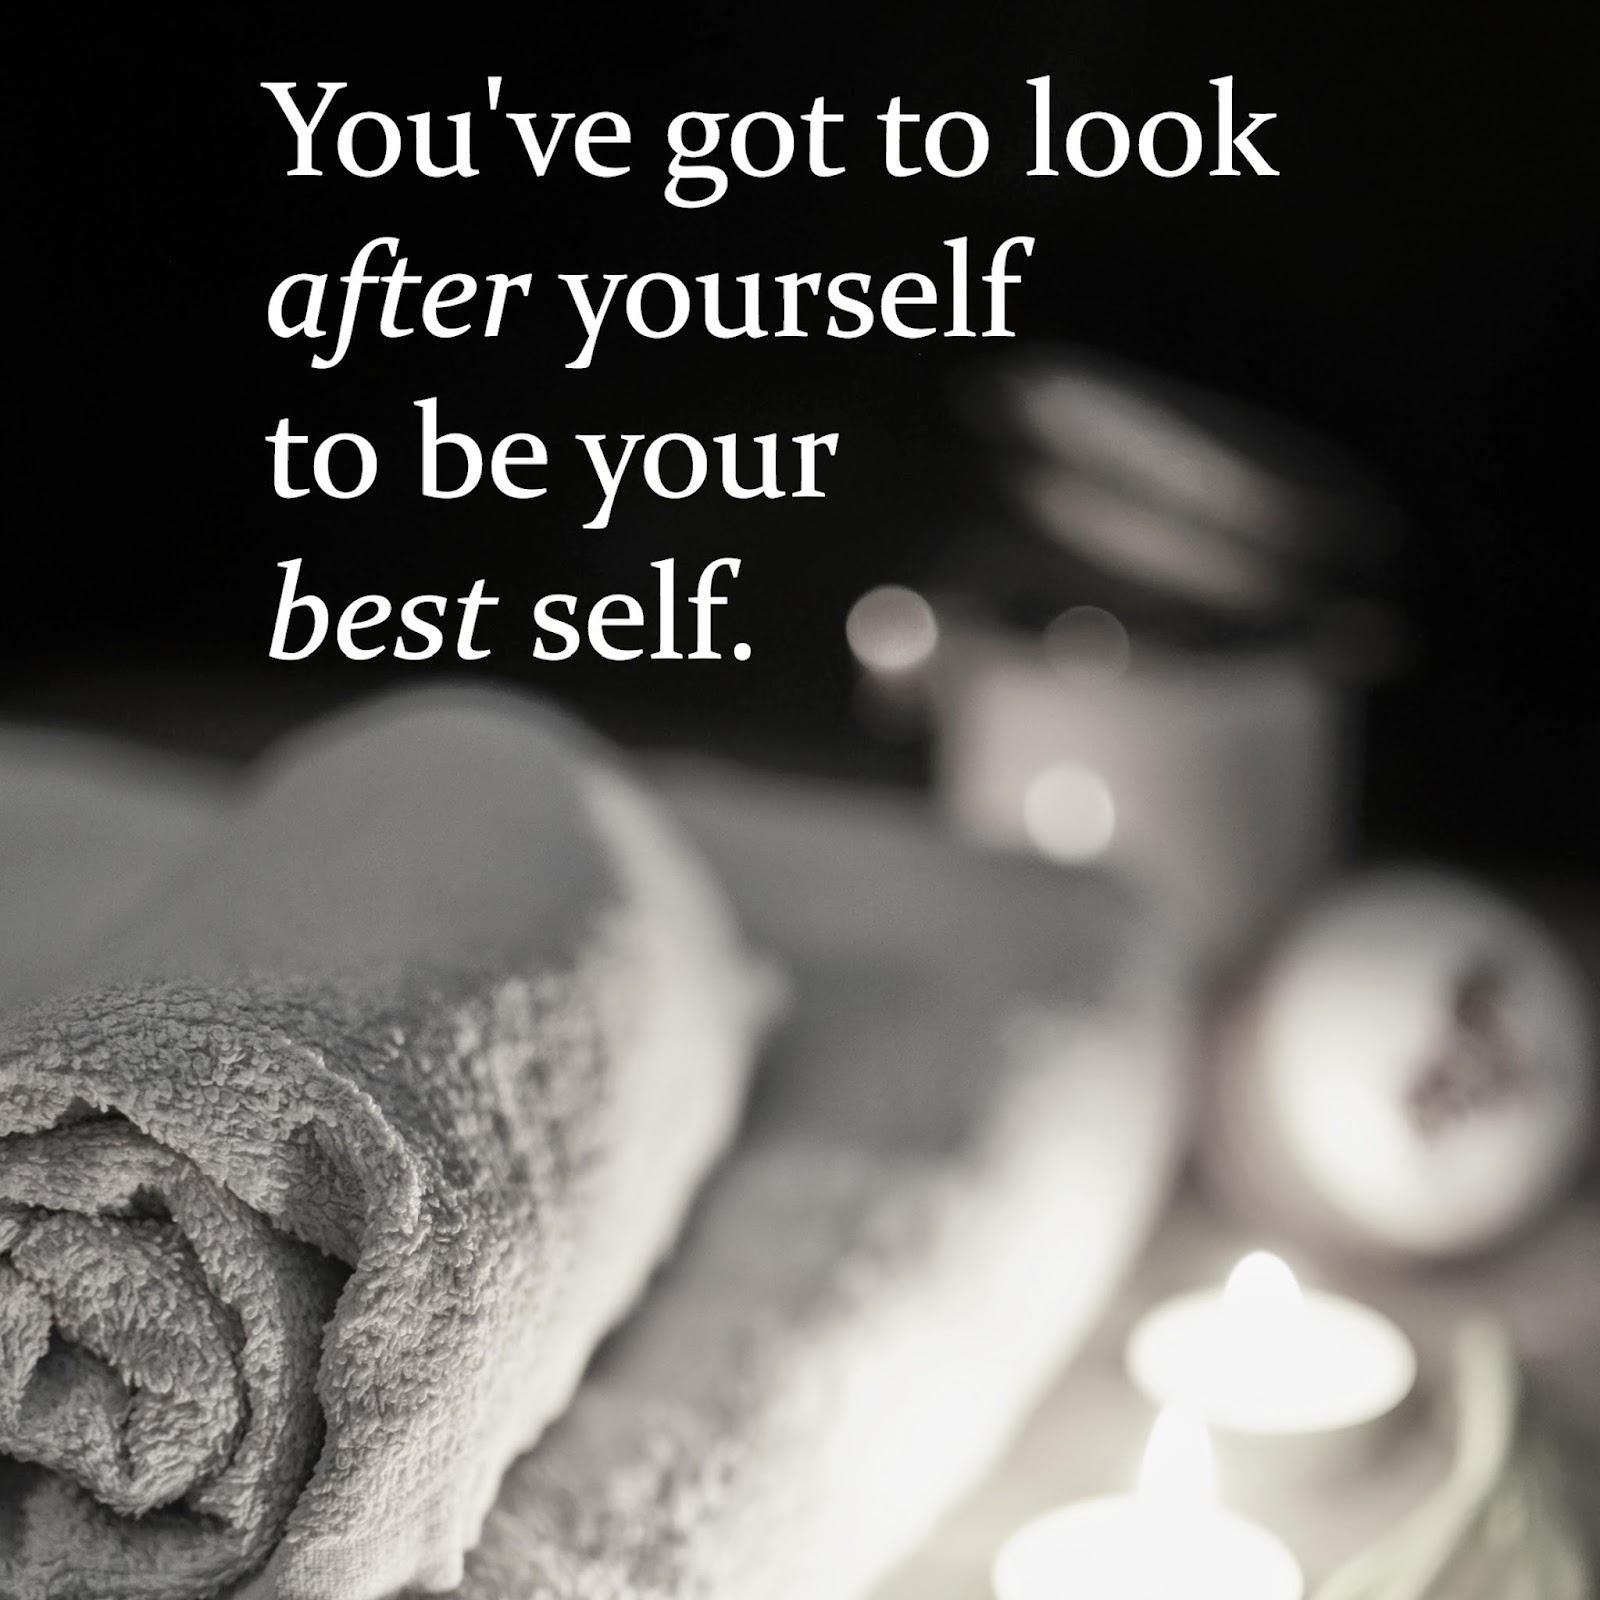 spa home spa look after yourself self care sleep